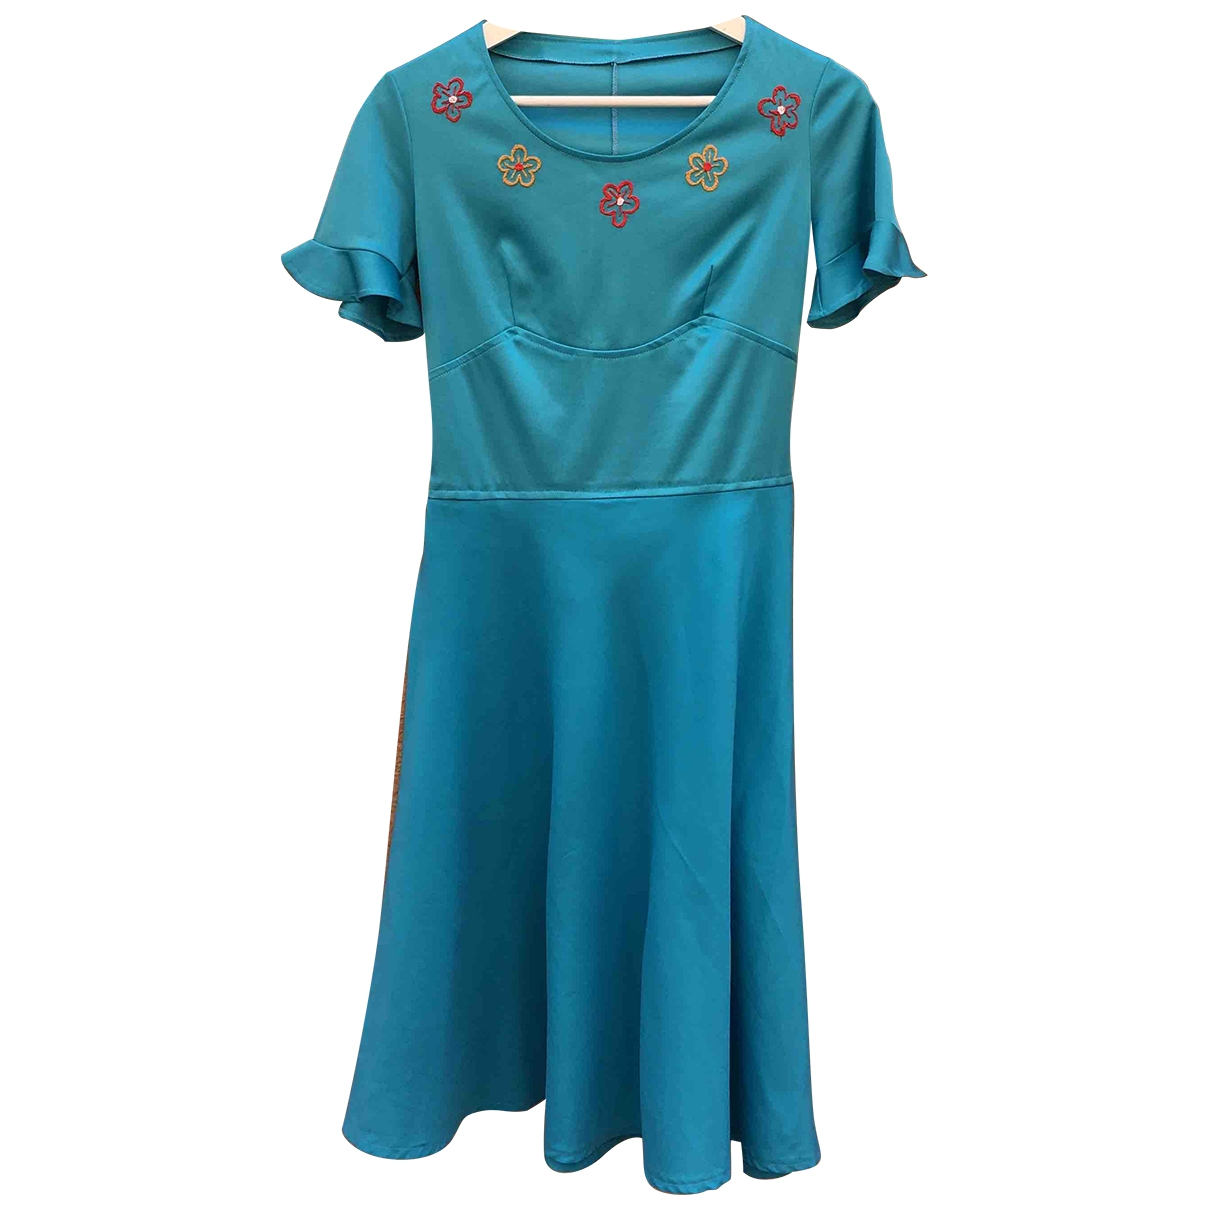 - Robe Hippie Chic pour femme - turquoise